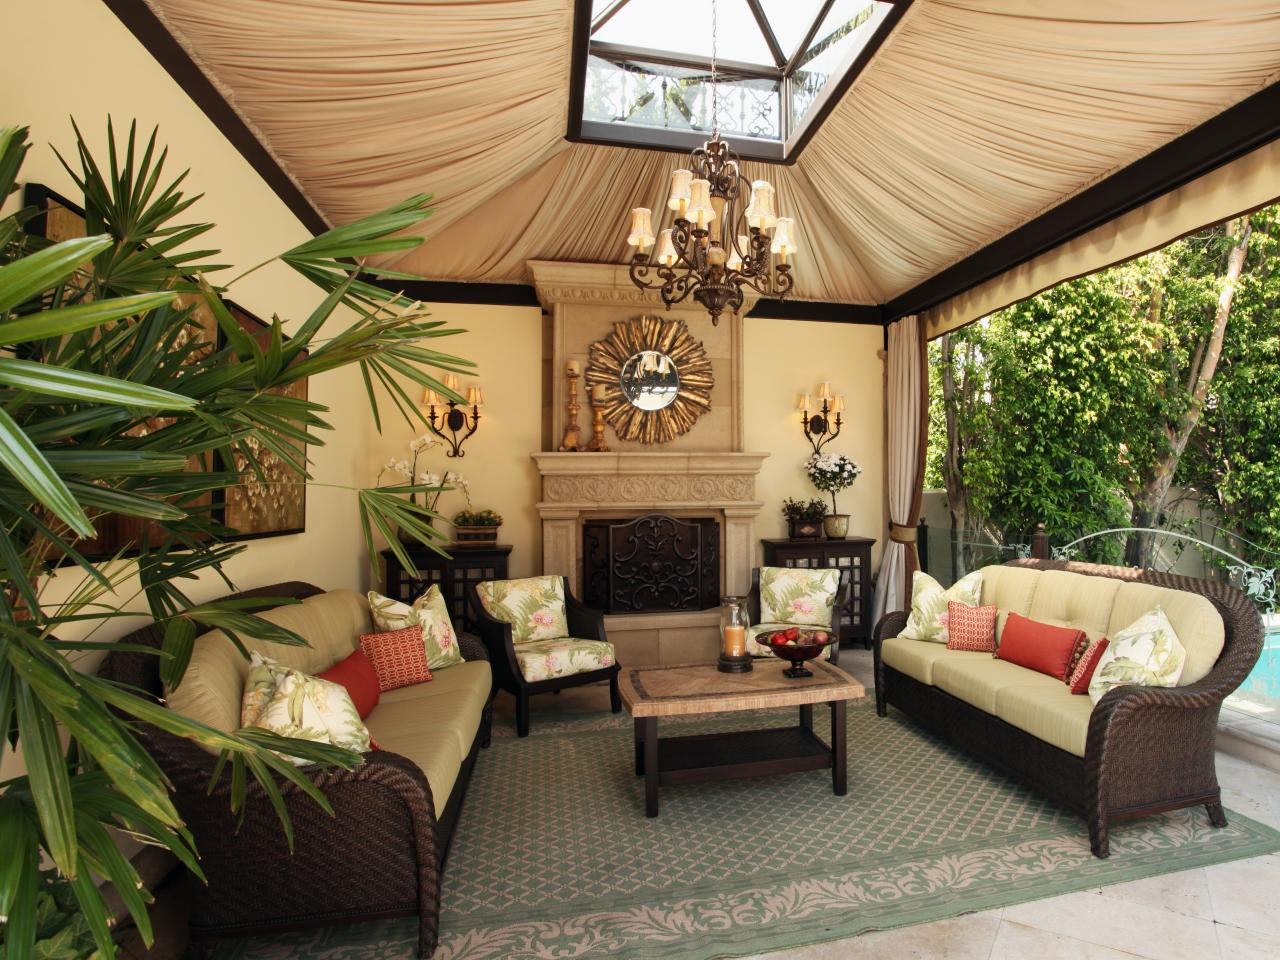 Photos hgtv Outdoor living areas images